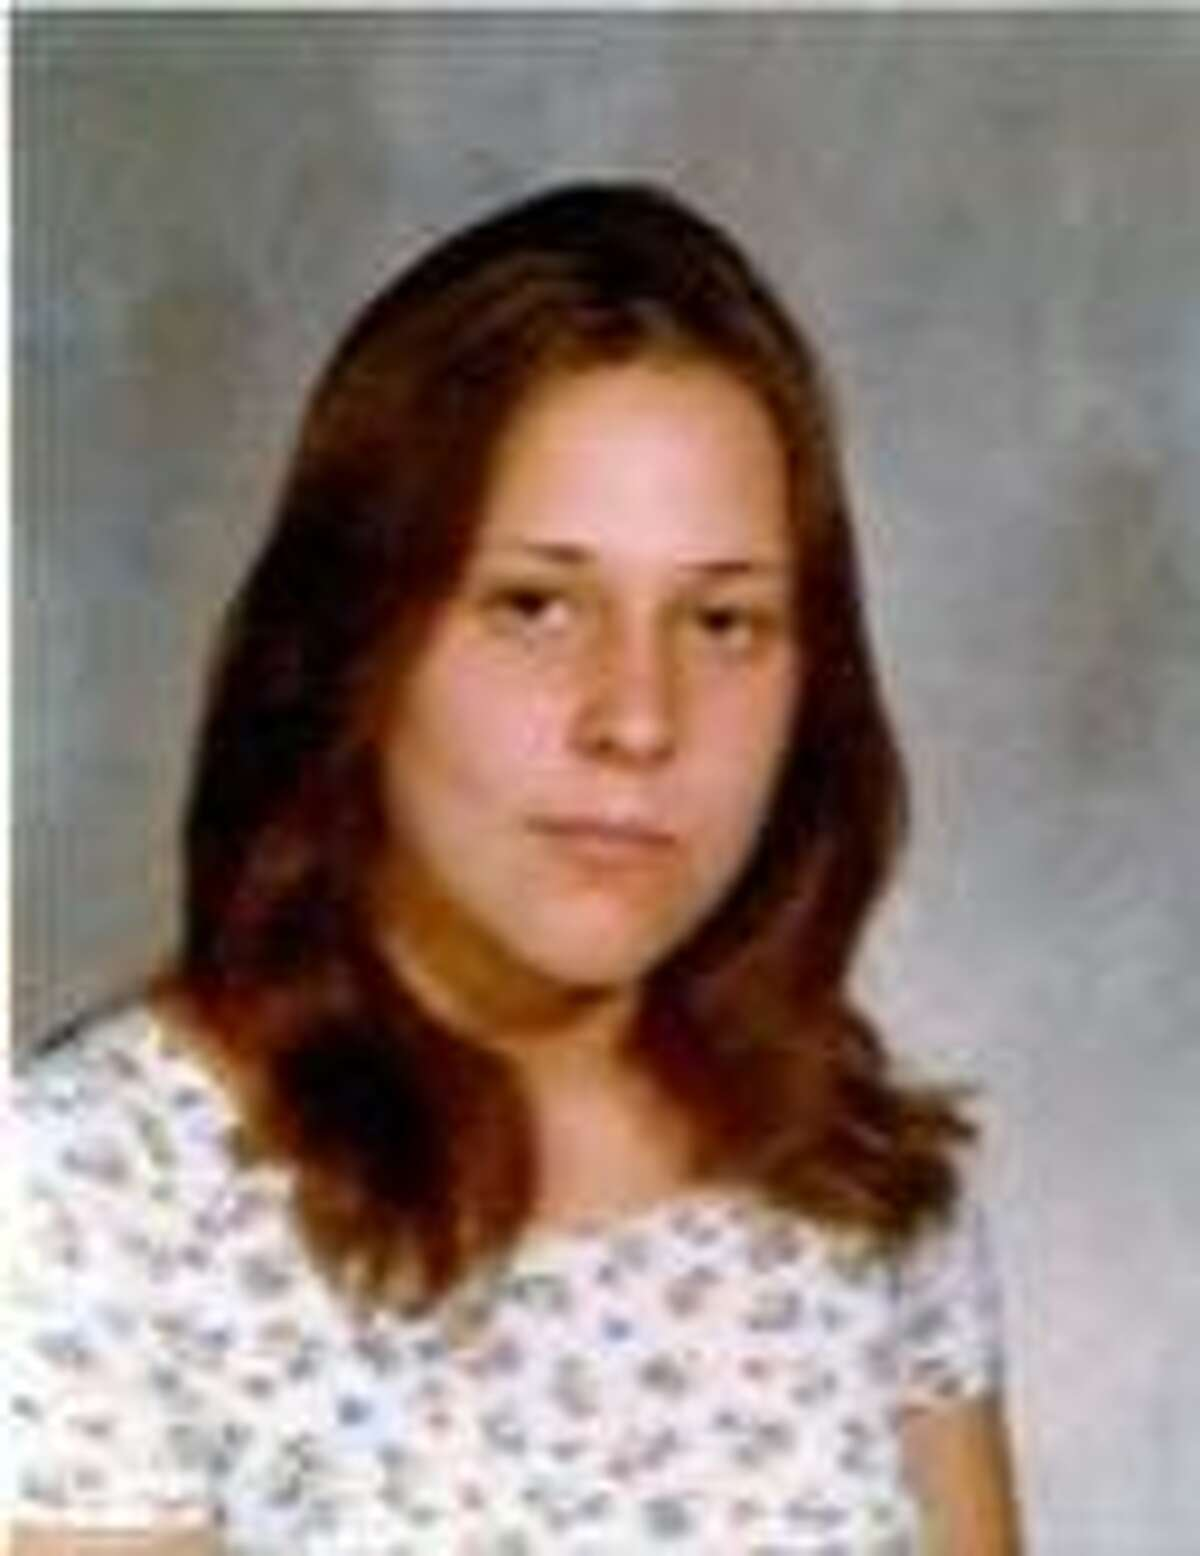 On Jan. 24, 1976, 14 year old Tanya Blackwell left her home on Heathcliff Drive, Pacifica, reportedly walking to a 7-Eleven store located at King Drive in South San Francisco. Her body was located months later off Gypsy Hill Road in Pacifica, California. This is currently being investigated by the Pacifica Police Department.